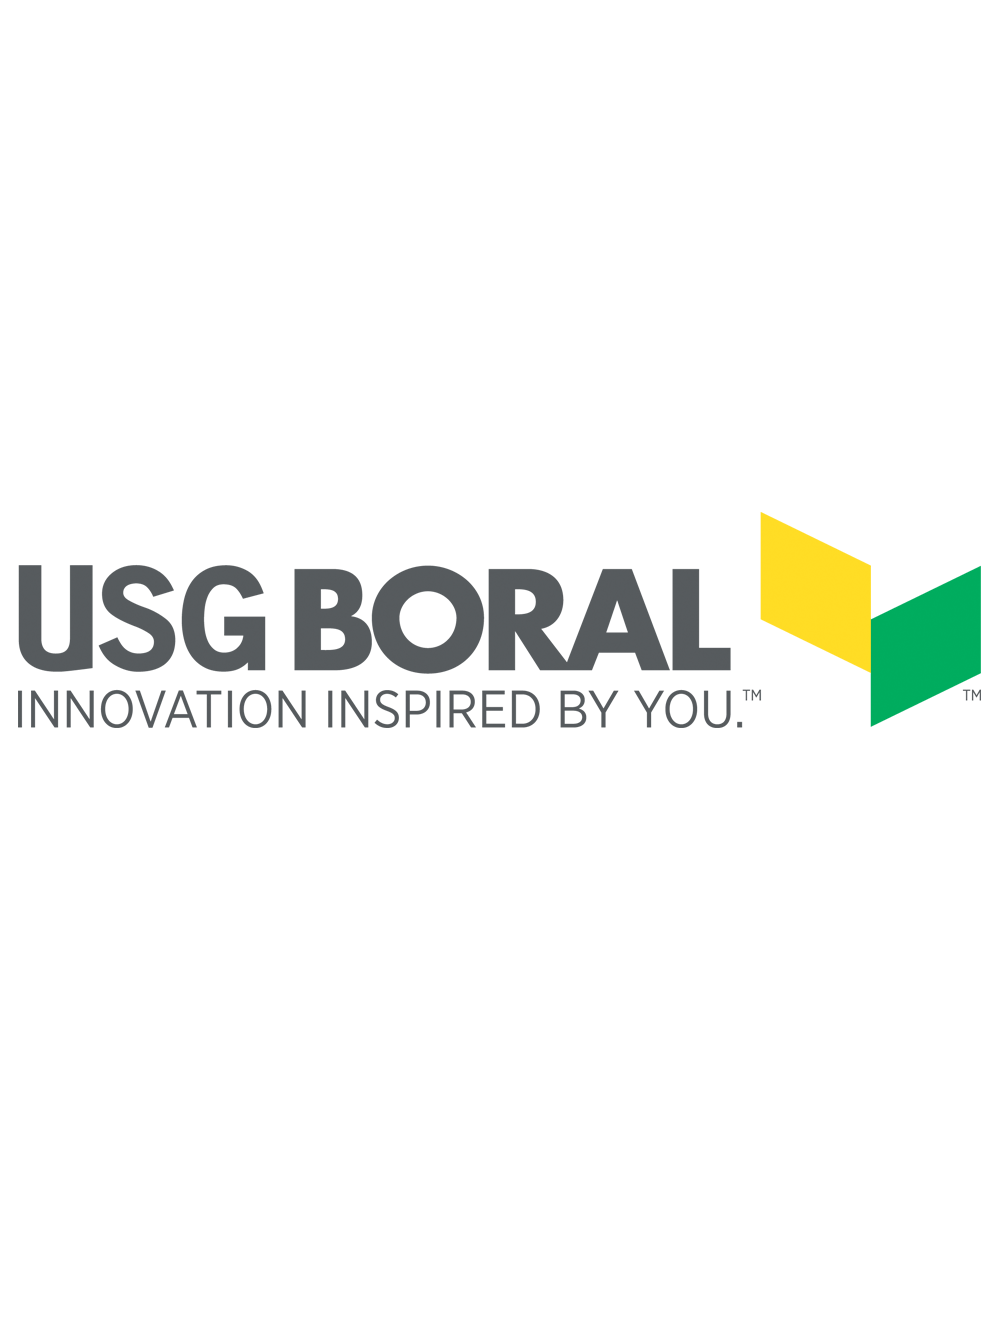 boral_1000x1333.png